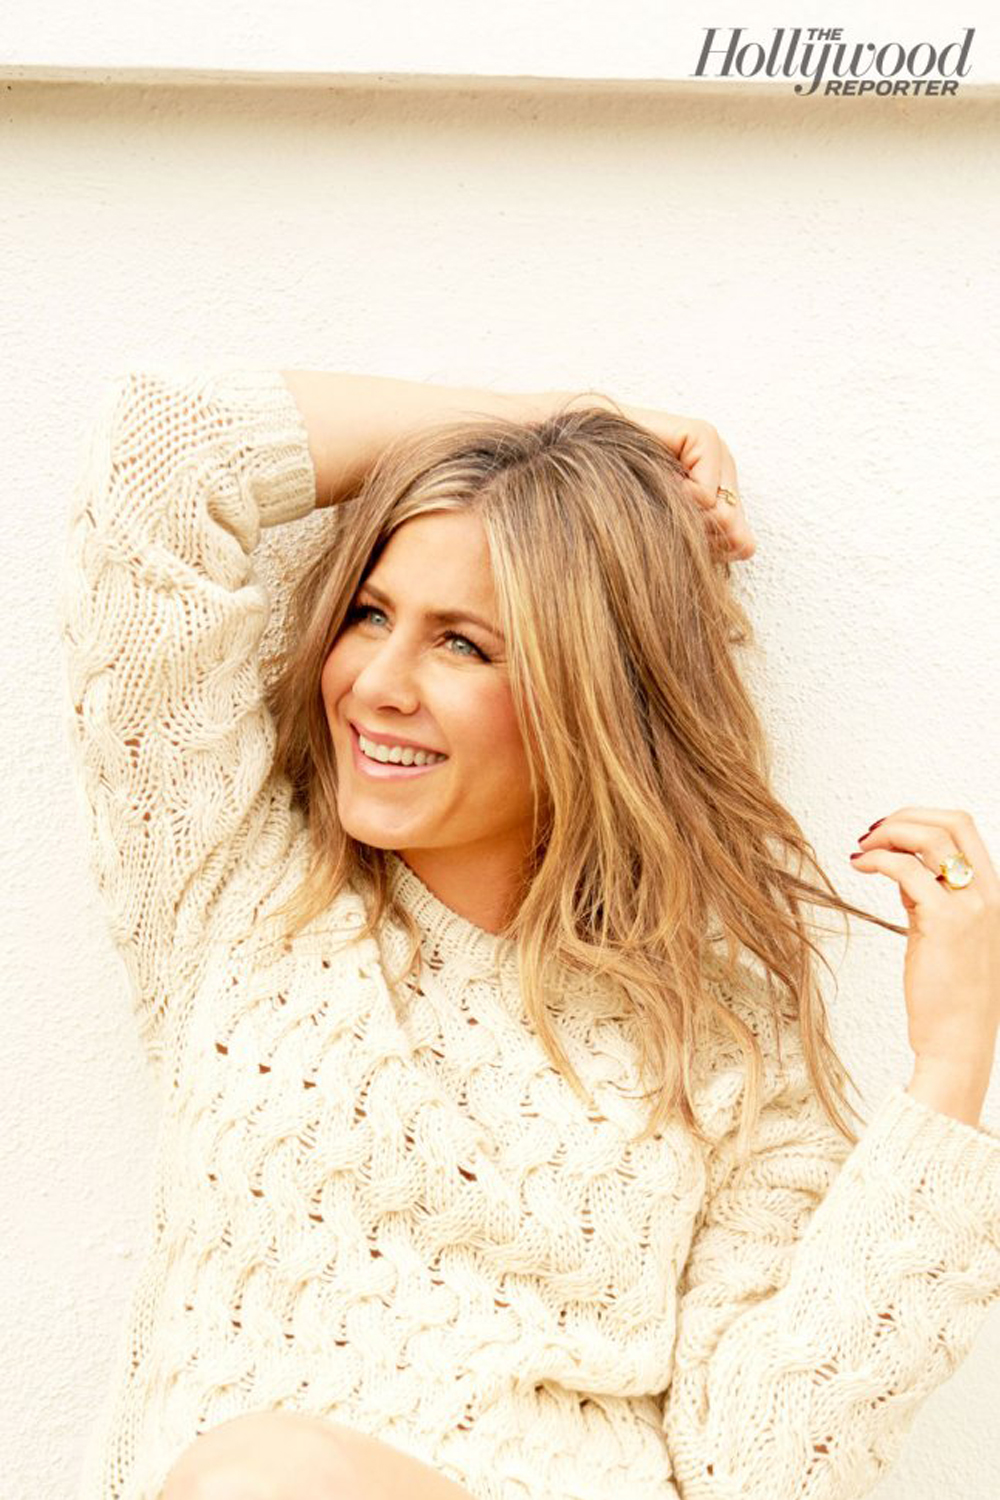 Jennifer Aniston The Hollywood Reporter interview